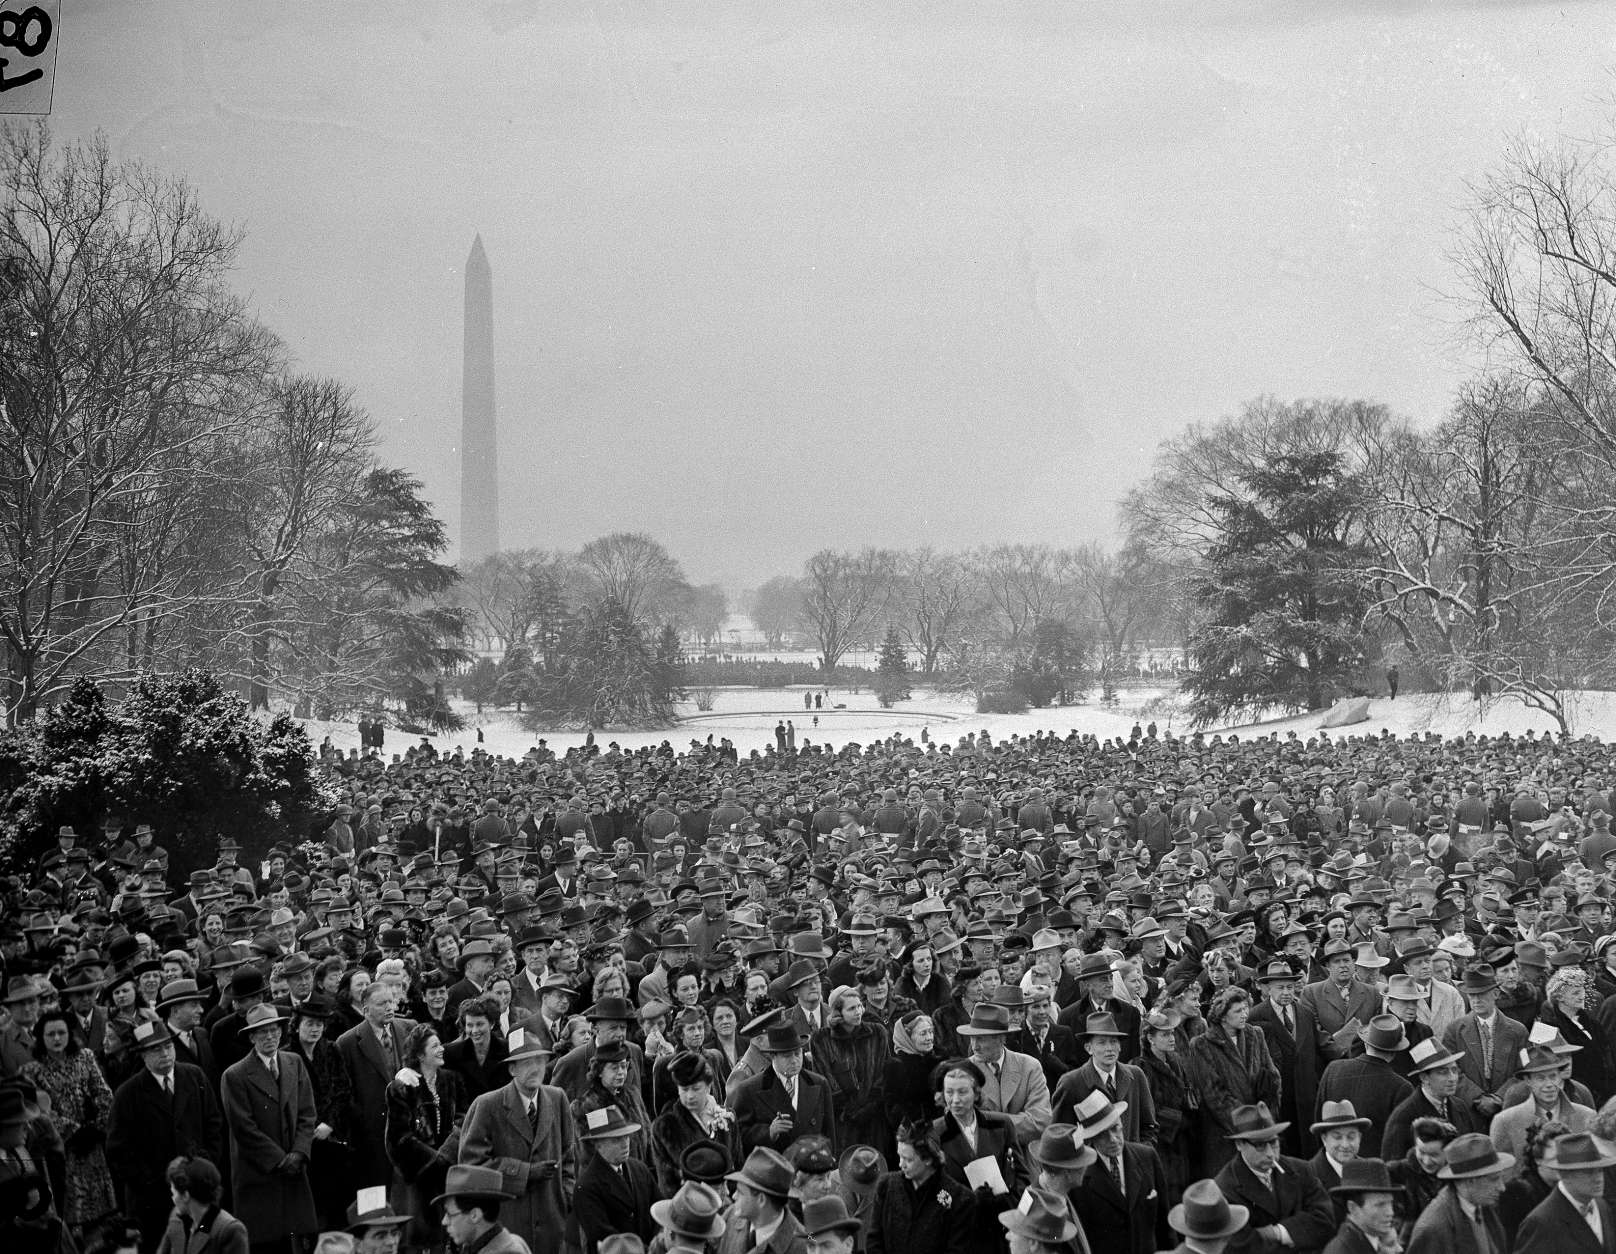 This is a view of the crowds gathered in Washington D.C., for the fourth inauguration of President Franklin D. Roosevelt, Jan. 20, 1945. (AP Photo)